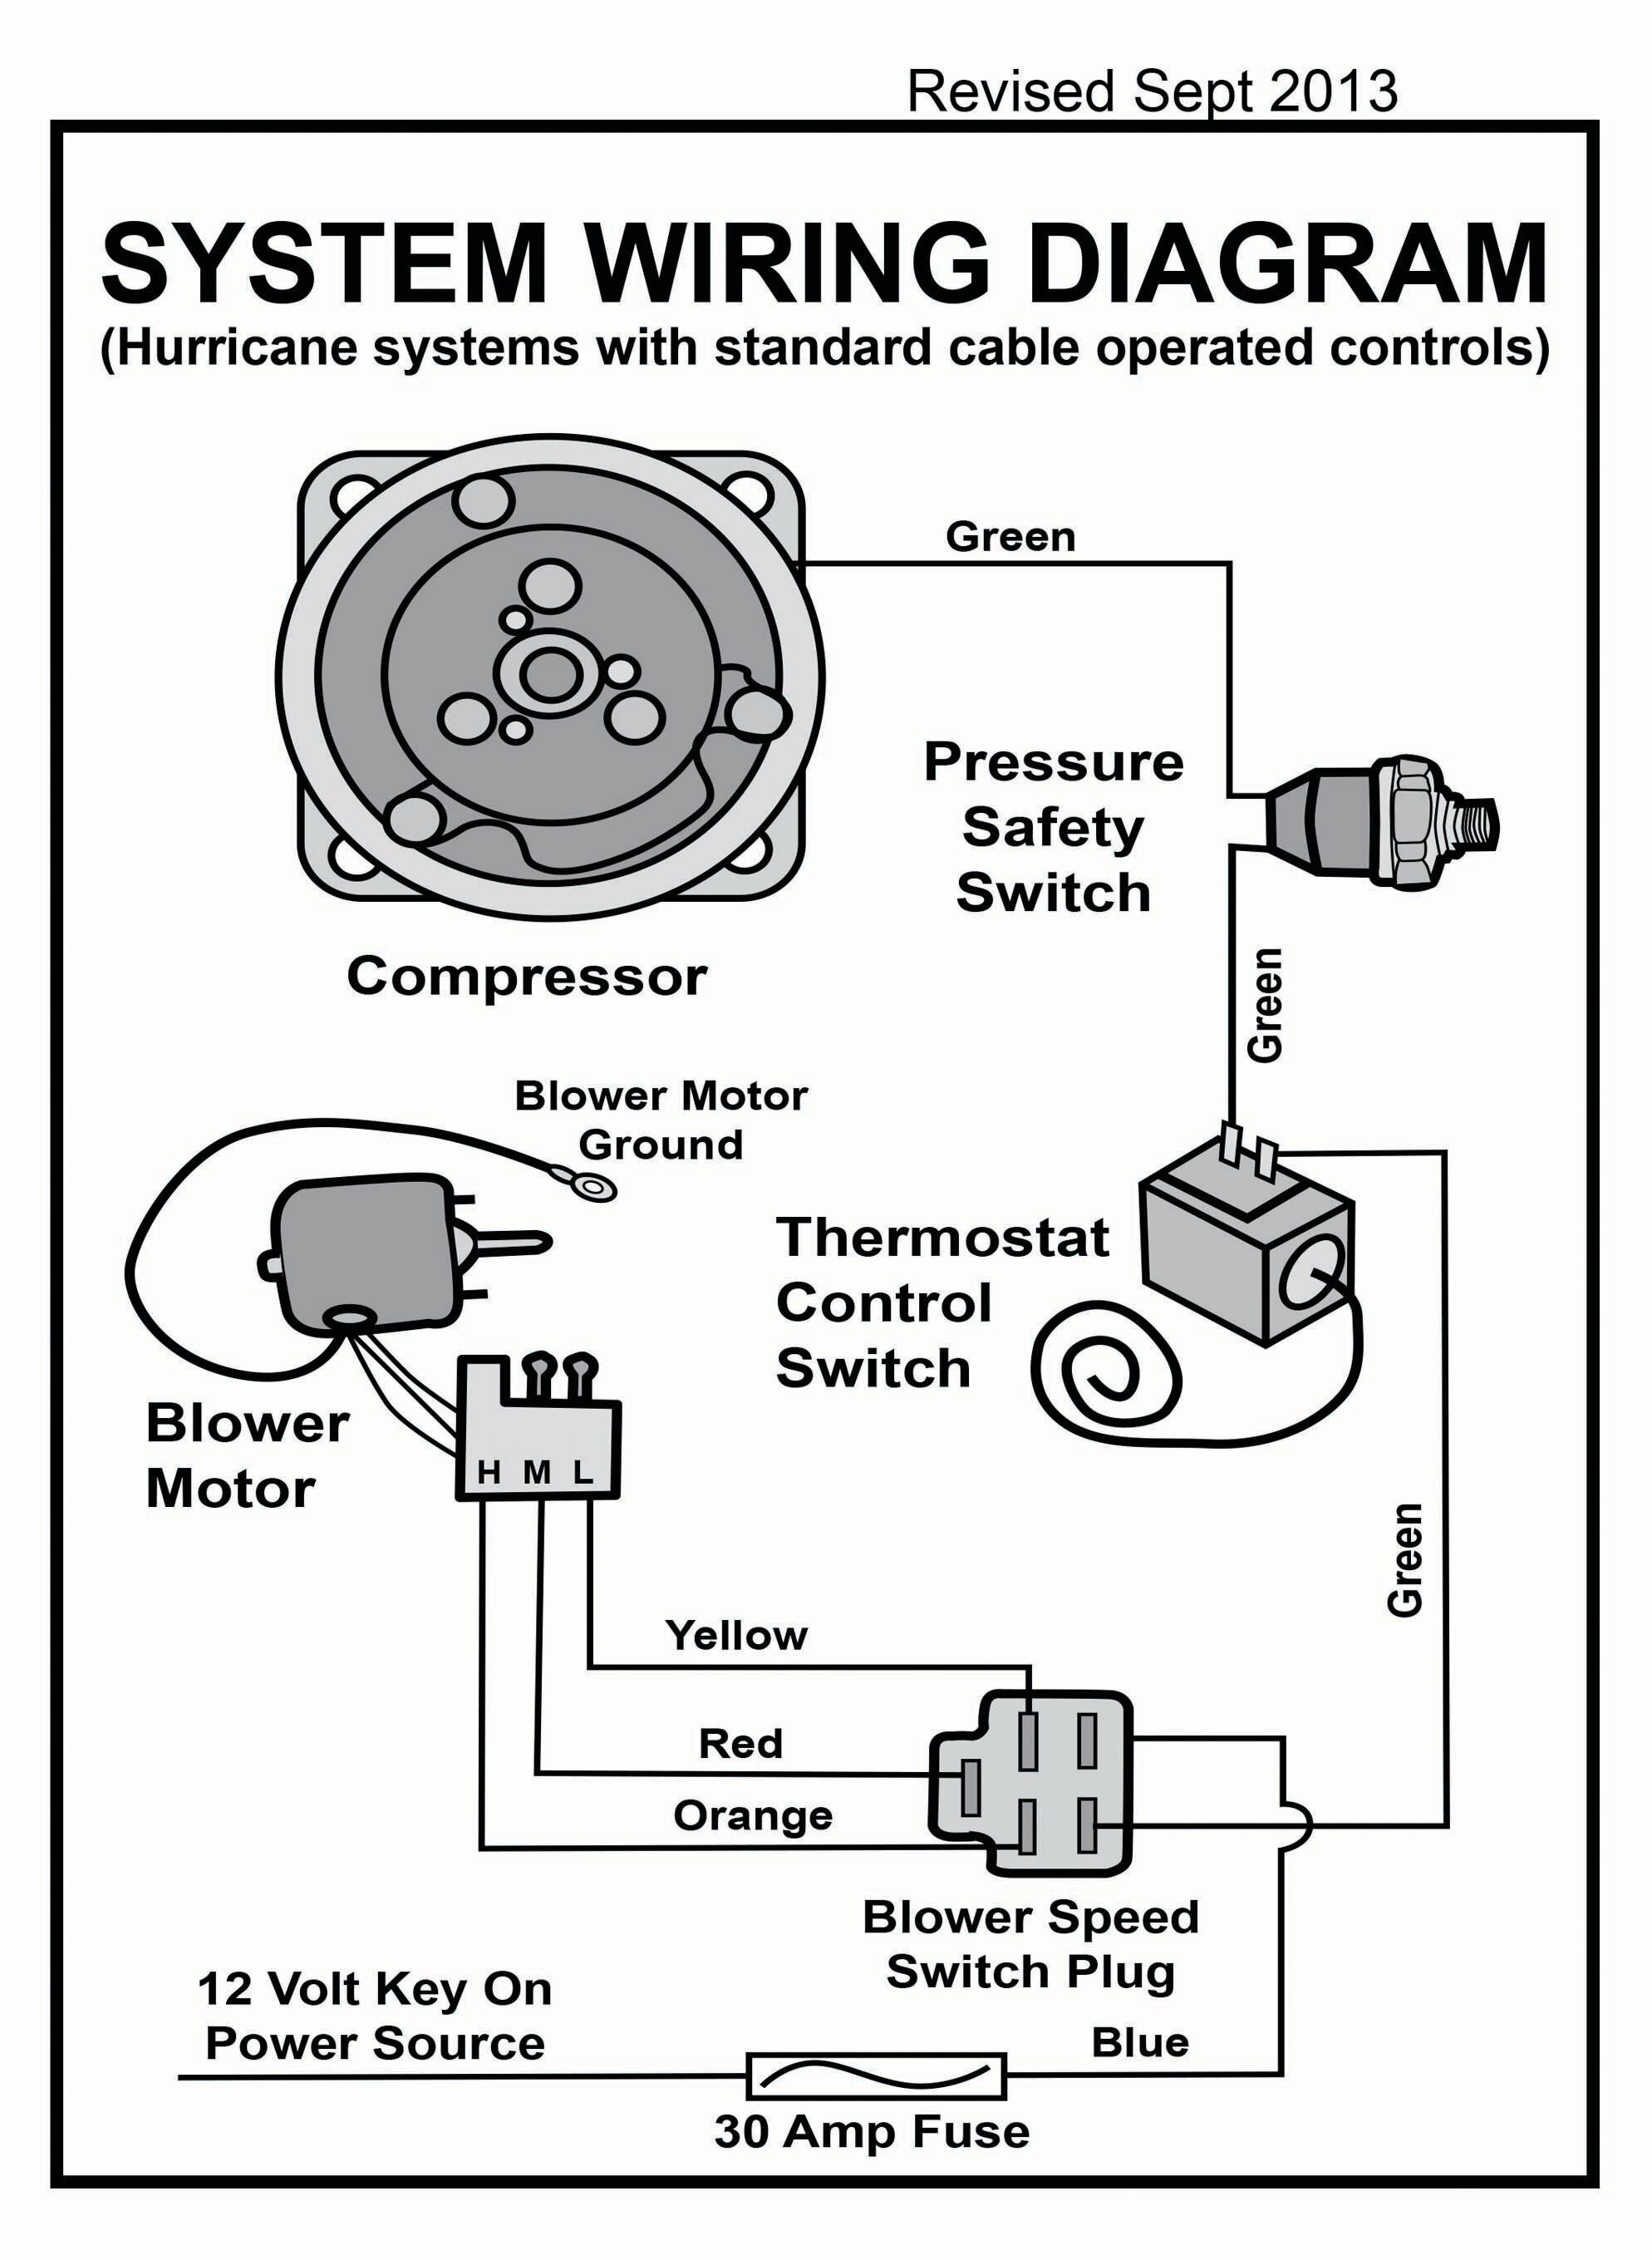 Old Air Products Mustang Installation Wiring Diagram